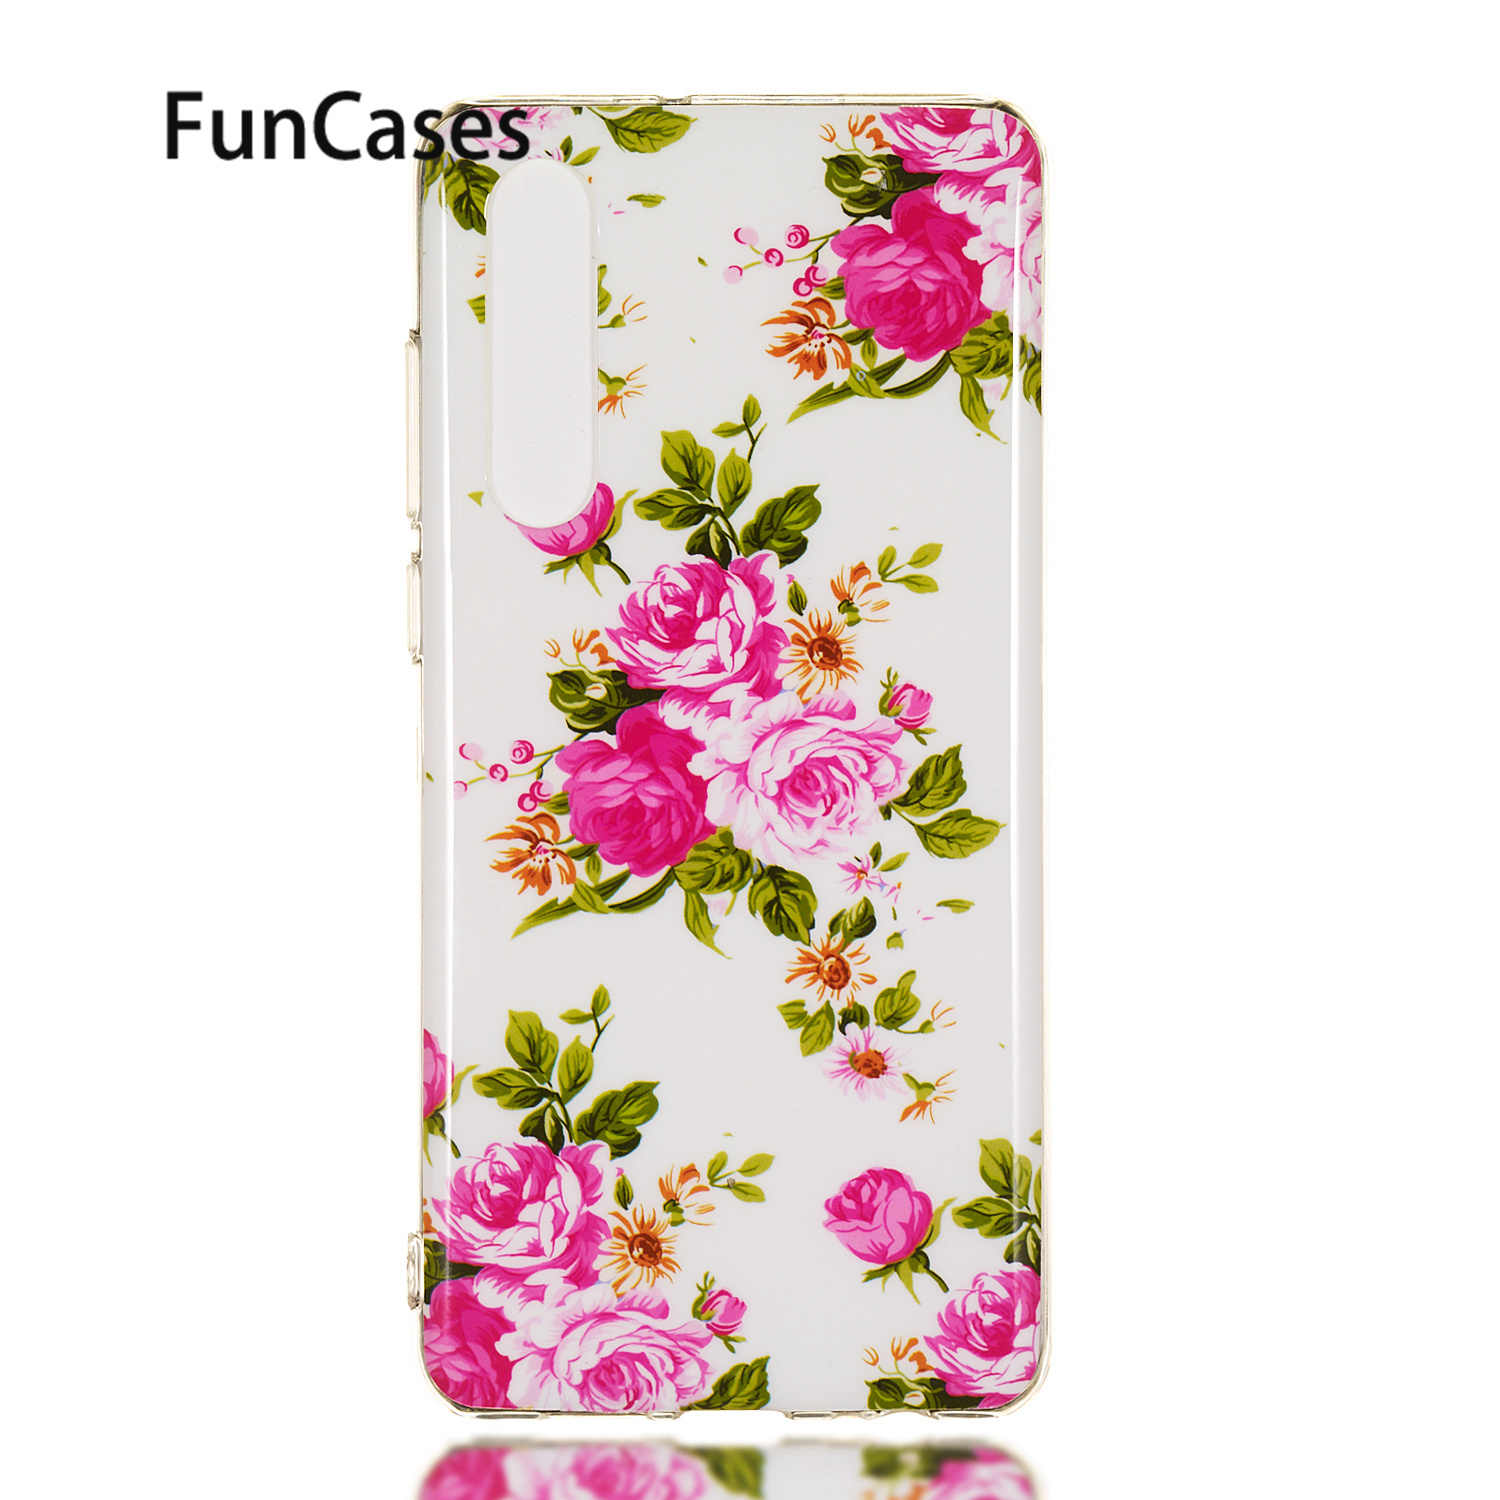 Deer Smartphone Cover For estuche Huawei P30 Cute Back Cover Case sFor Huawei funda P20 Lite Pro Fundas Soft TPU Shell Telefoon